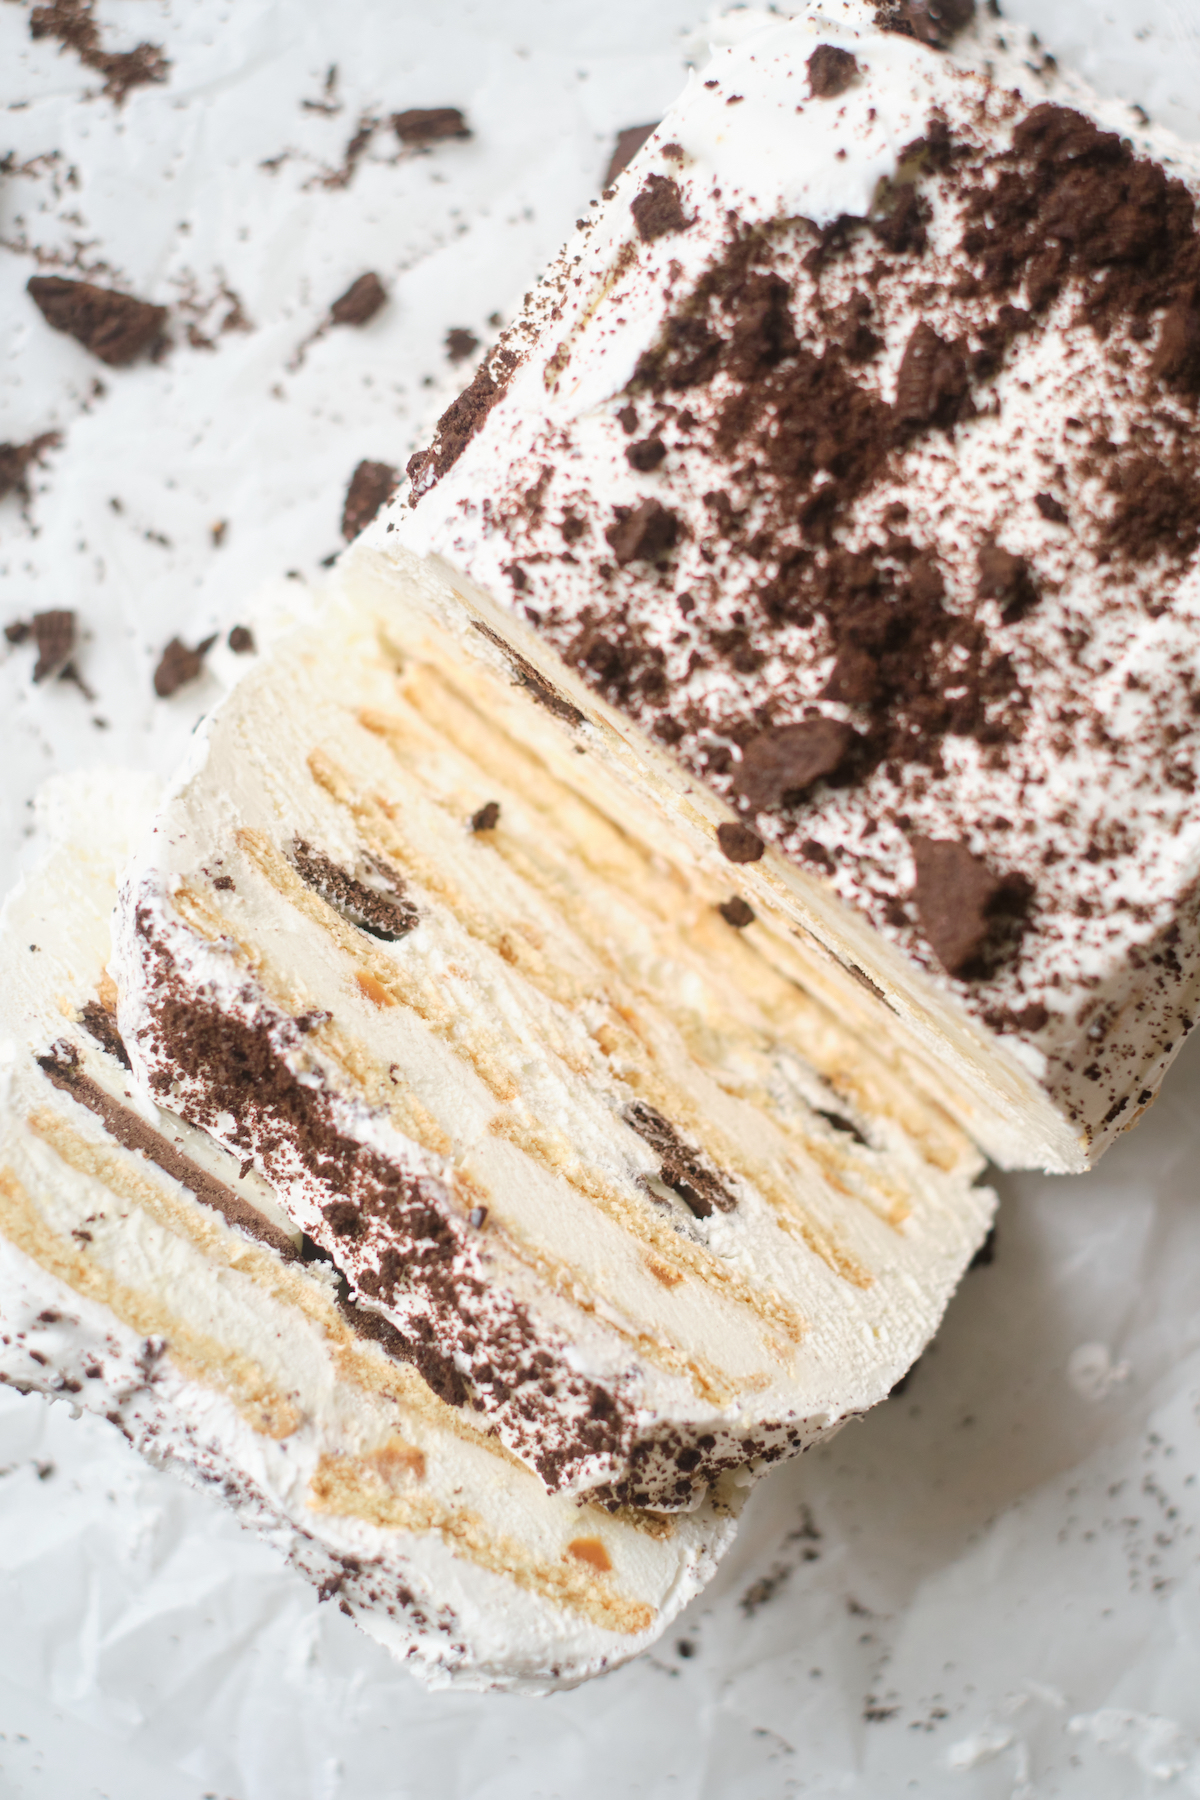 top view of the finished oreo ice cream sandwich cake